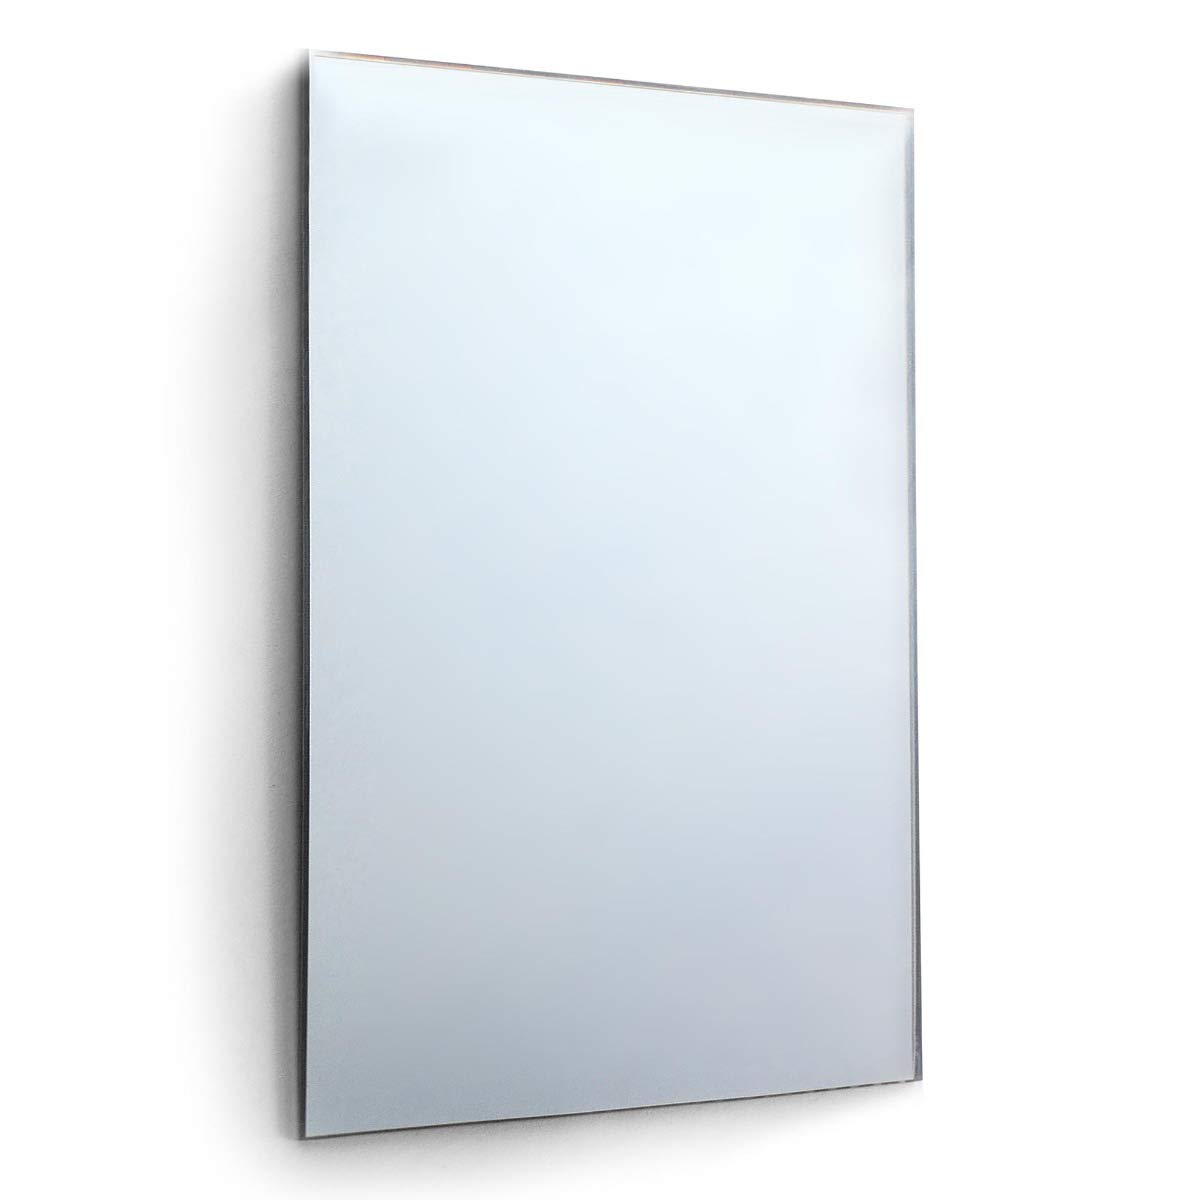 New 4mm Thick Large Mirror Glass Gym Or Dance Studio 6 X 4 (183CM X 122CM) MirrorOutlet